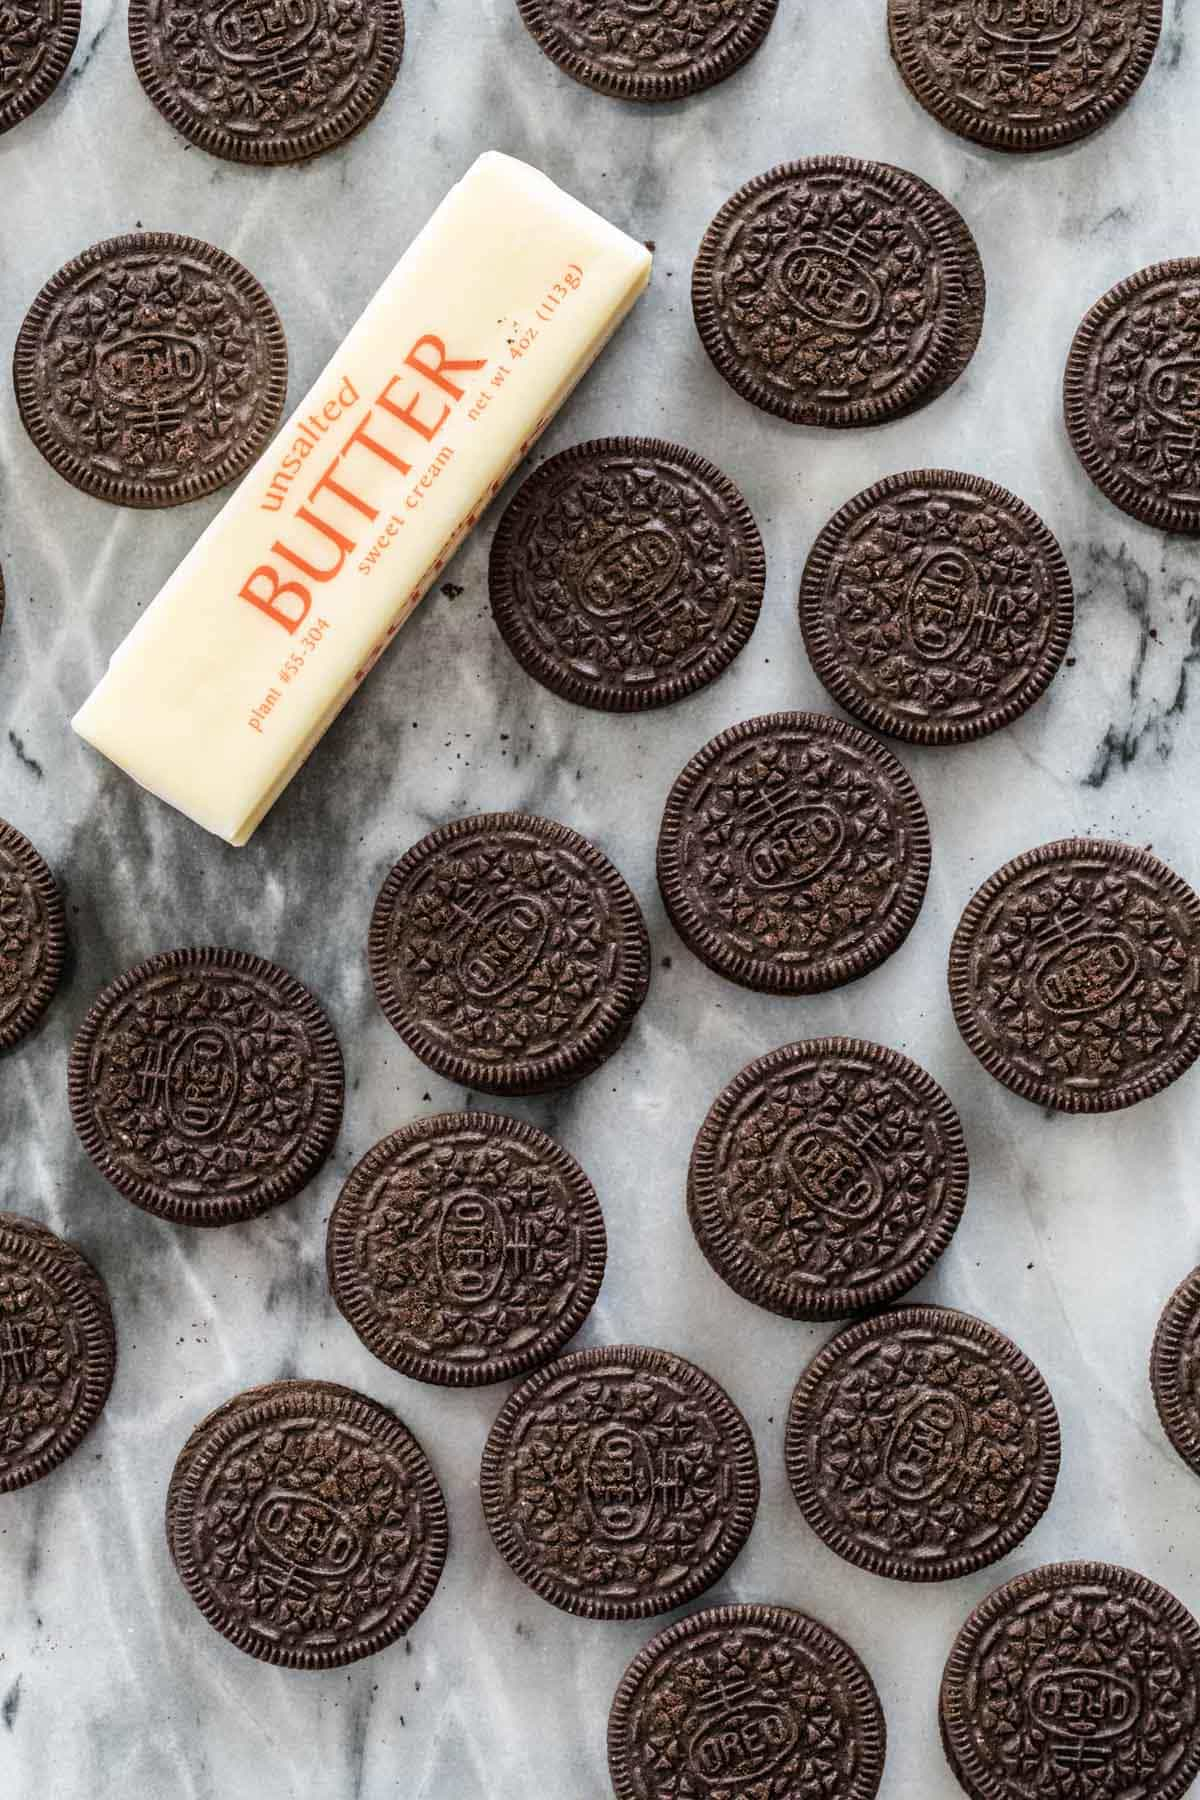 oreo cookies and stick of butter on marble